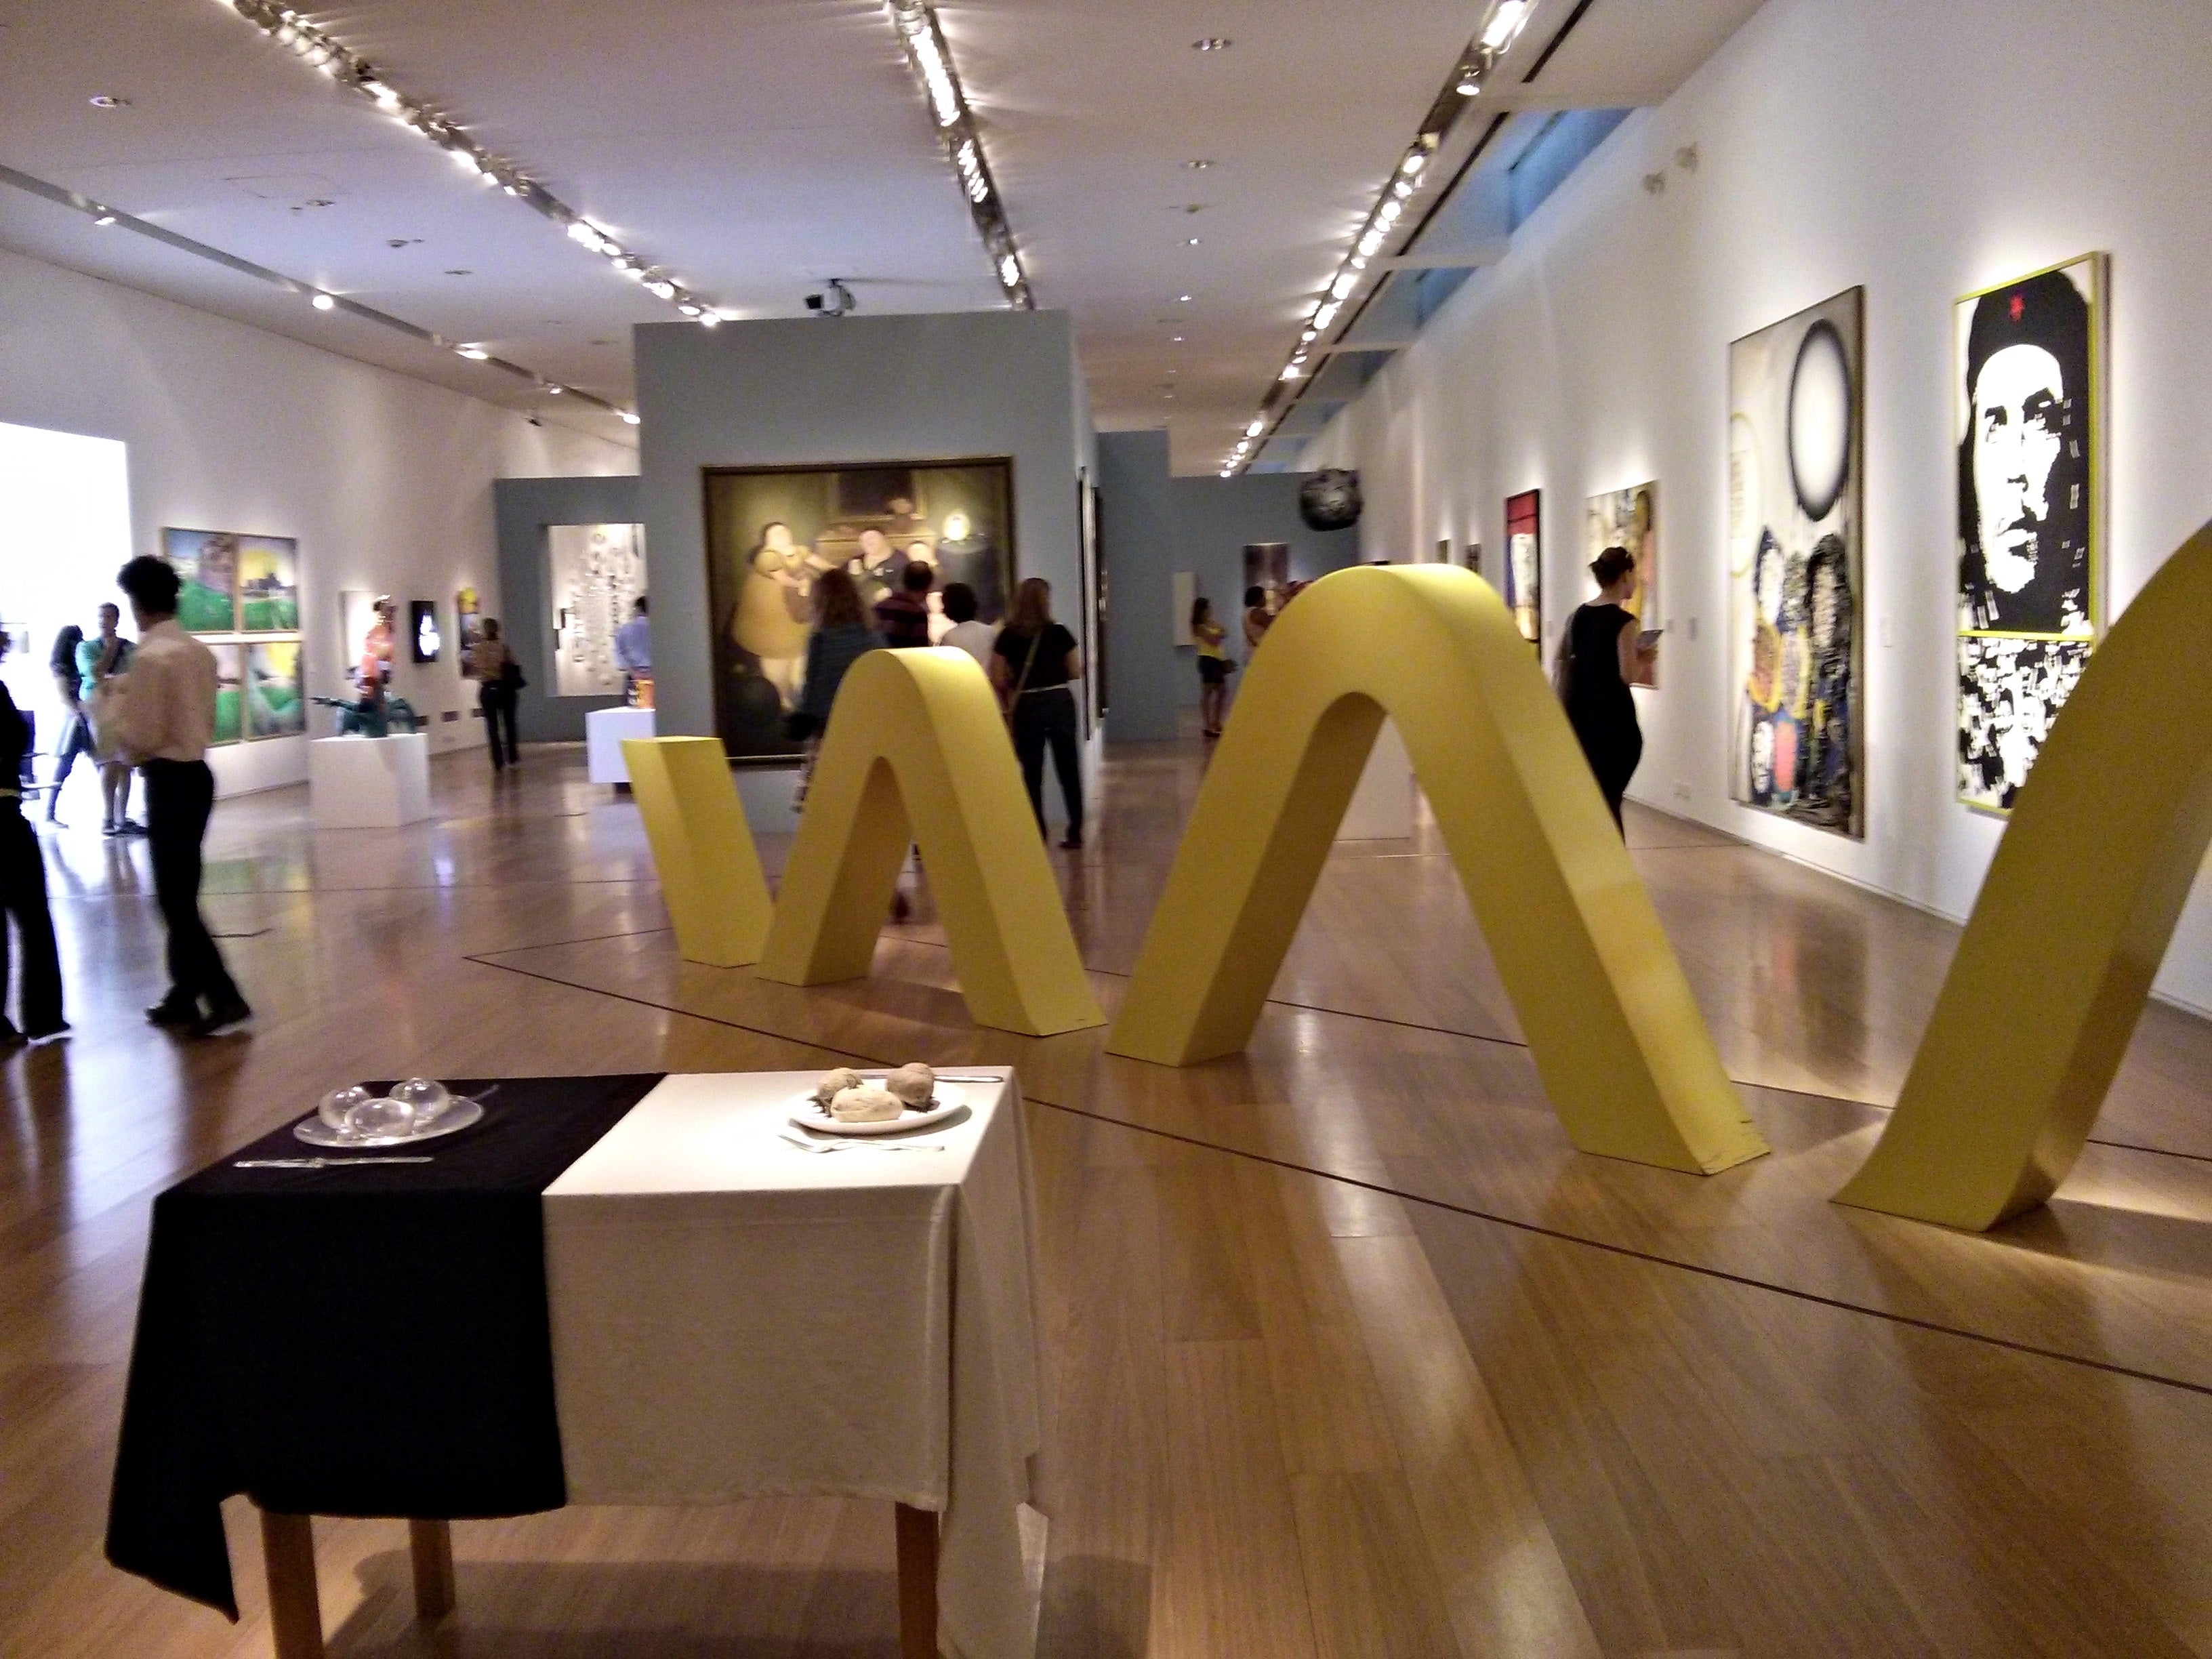 Museum of Latin American Art of Buenos Aires (MALBA)